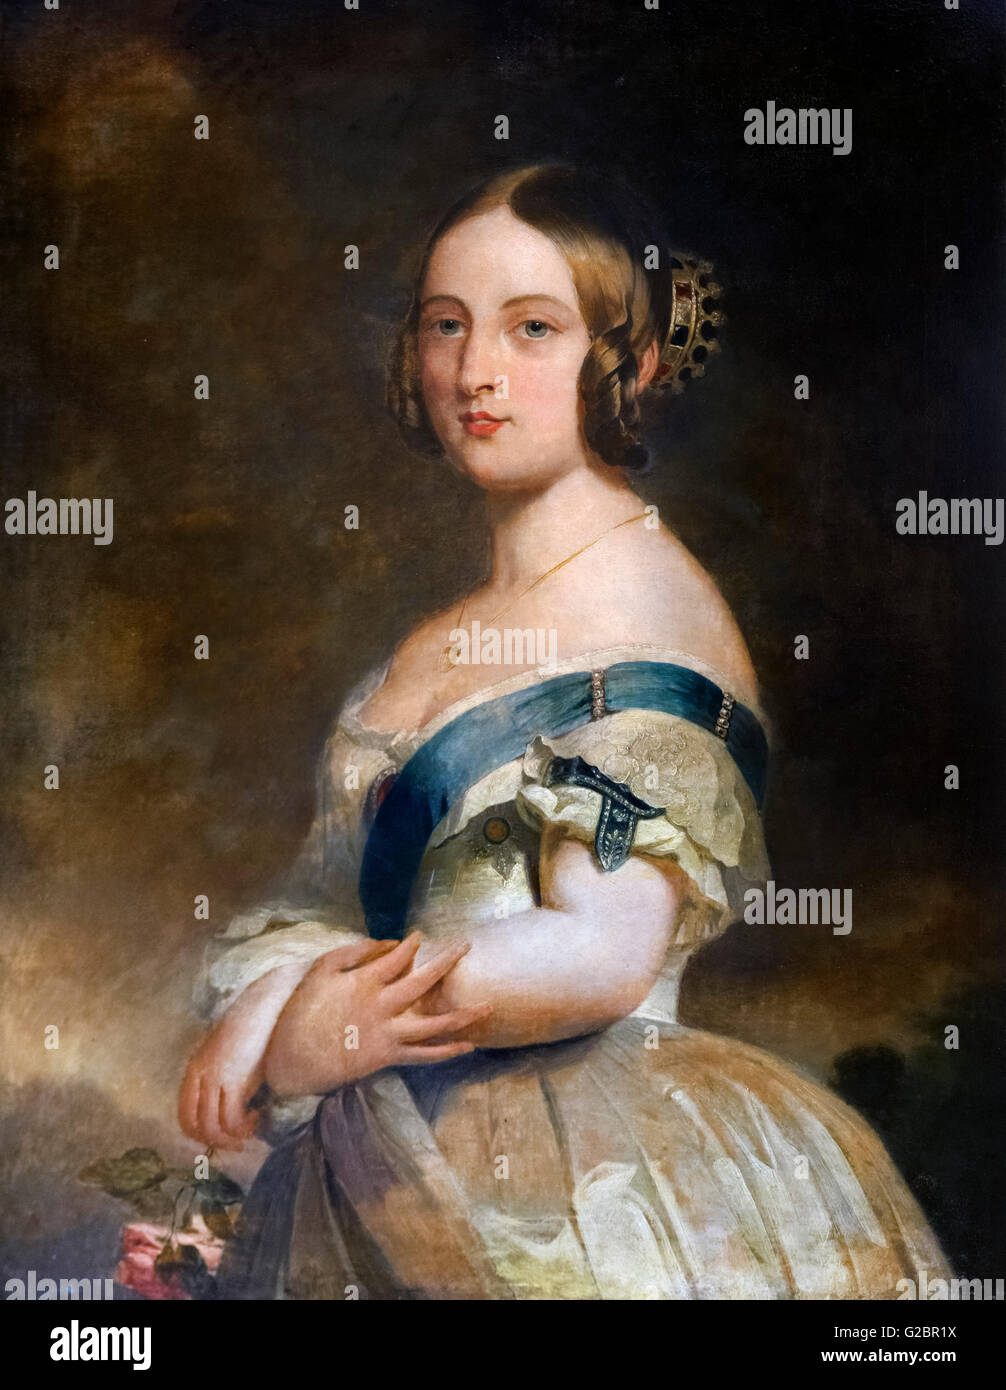 Queen Victoria of England as a young woman. Portrait by Franz Xaver Winterhalter, oil on canvas, c.1840. T - Stock Image